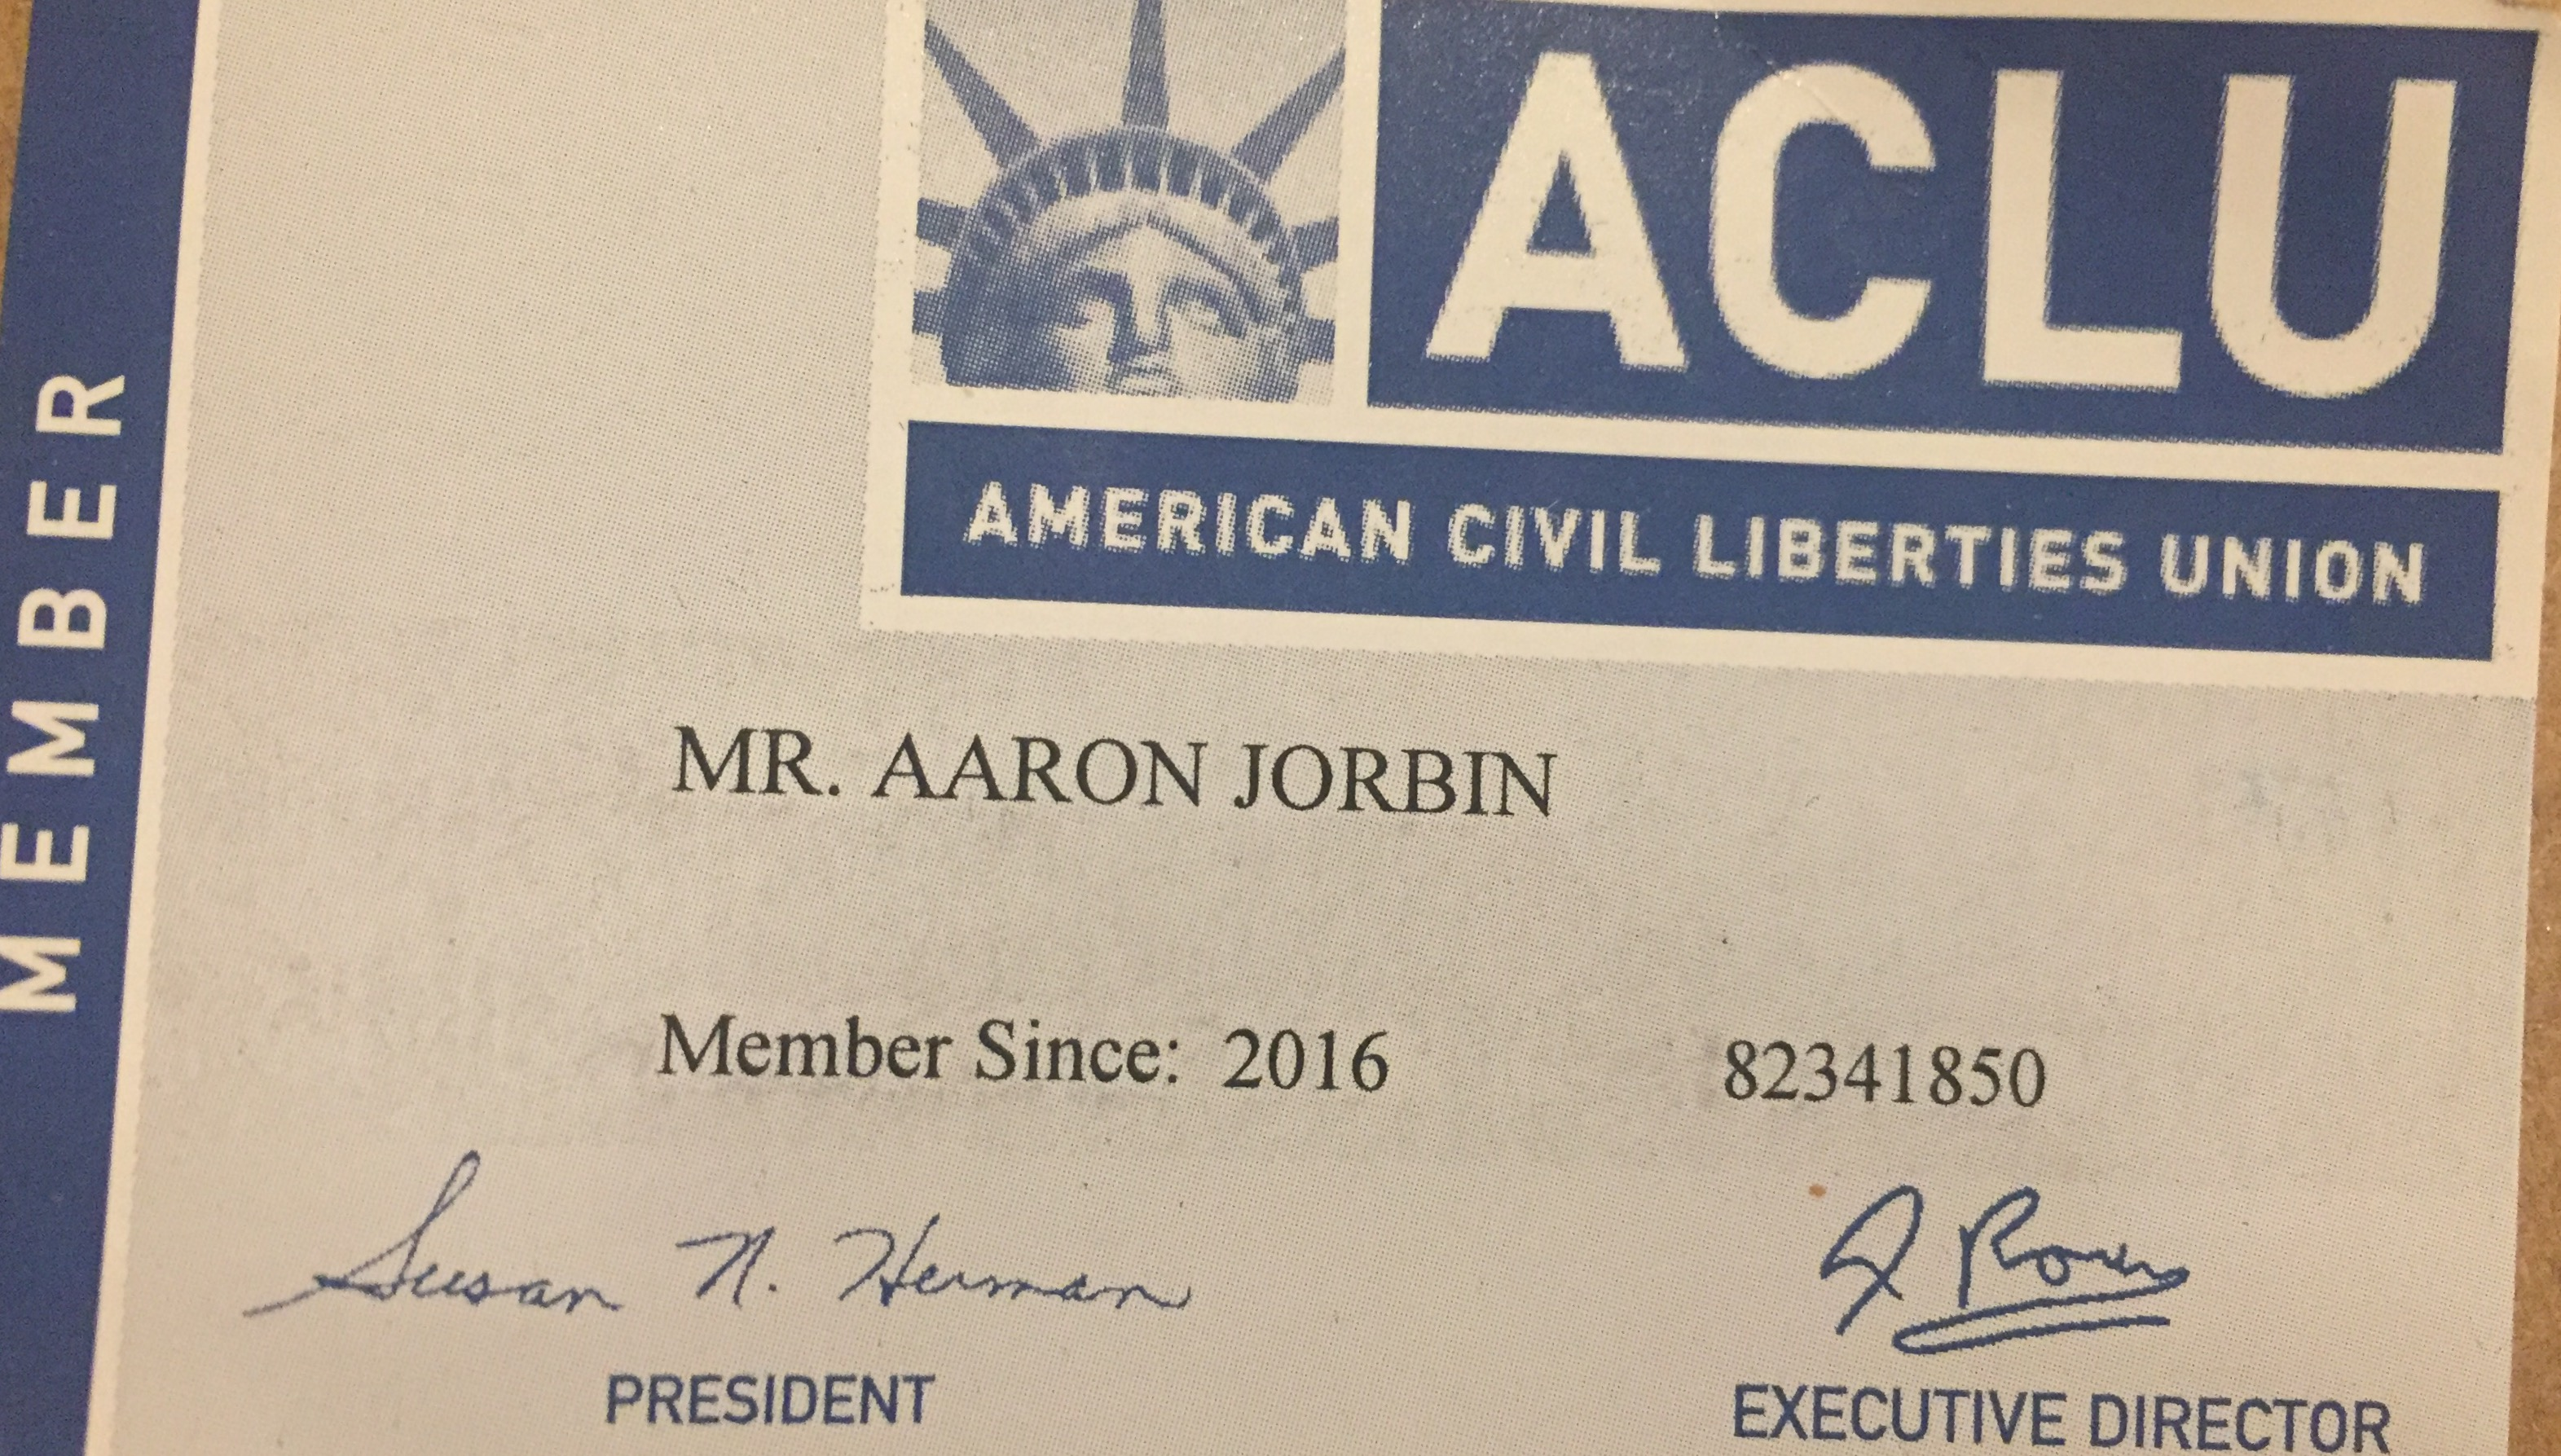 I'm proud to be a card carying member of the ACLU